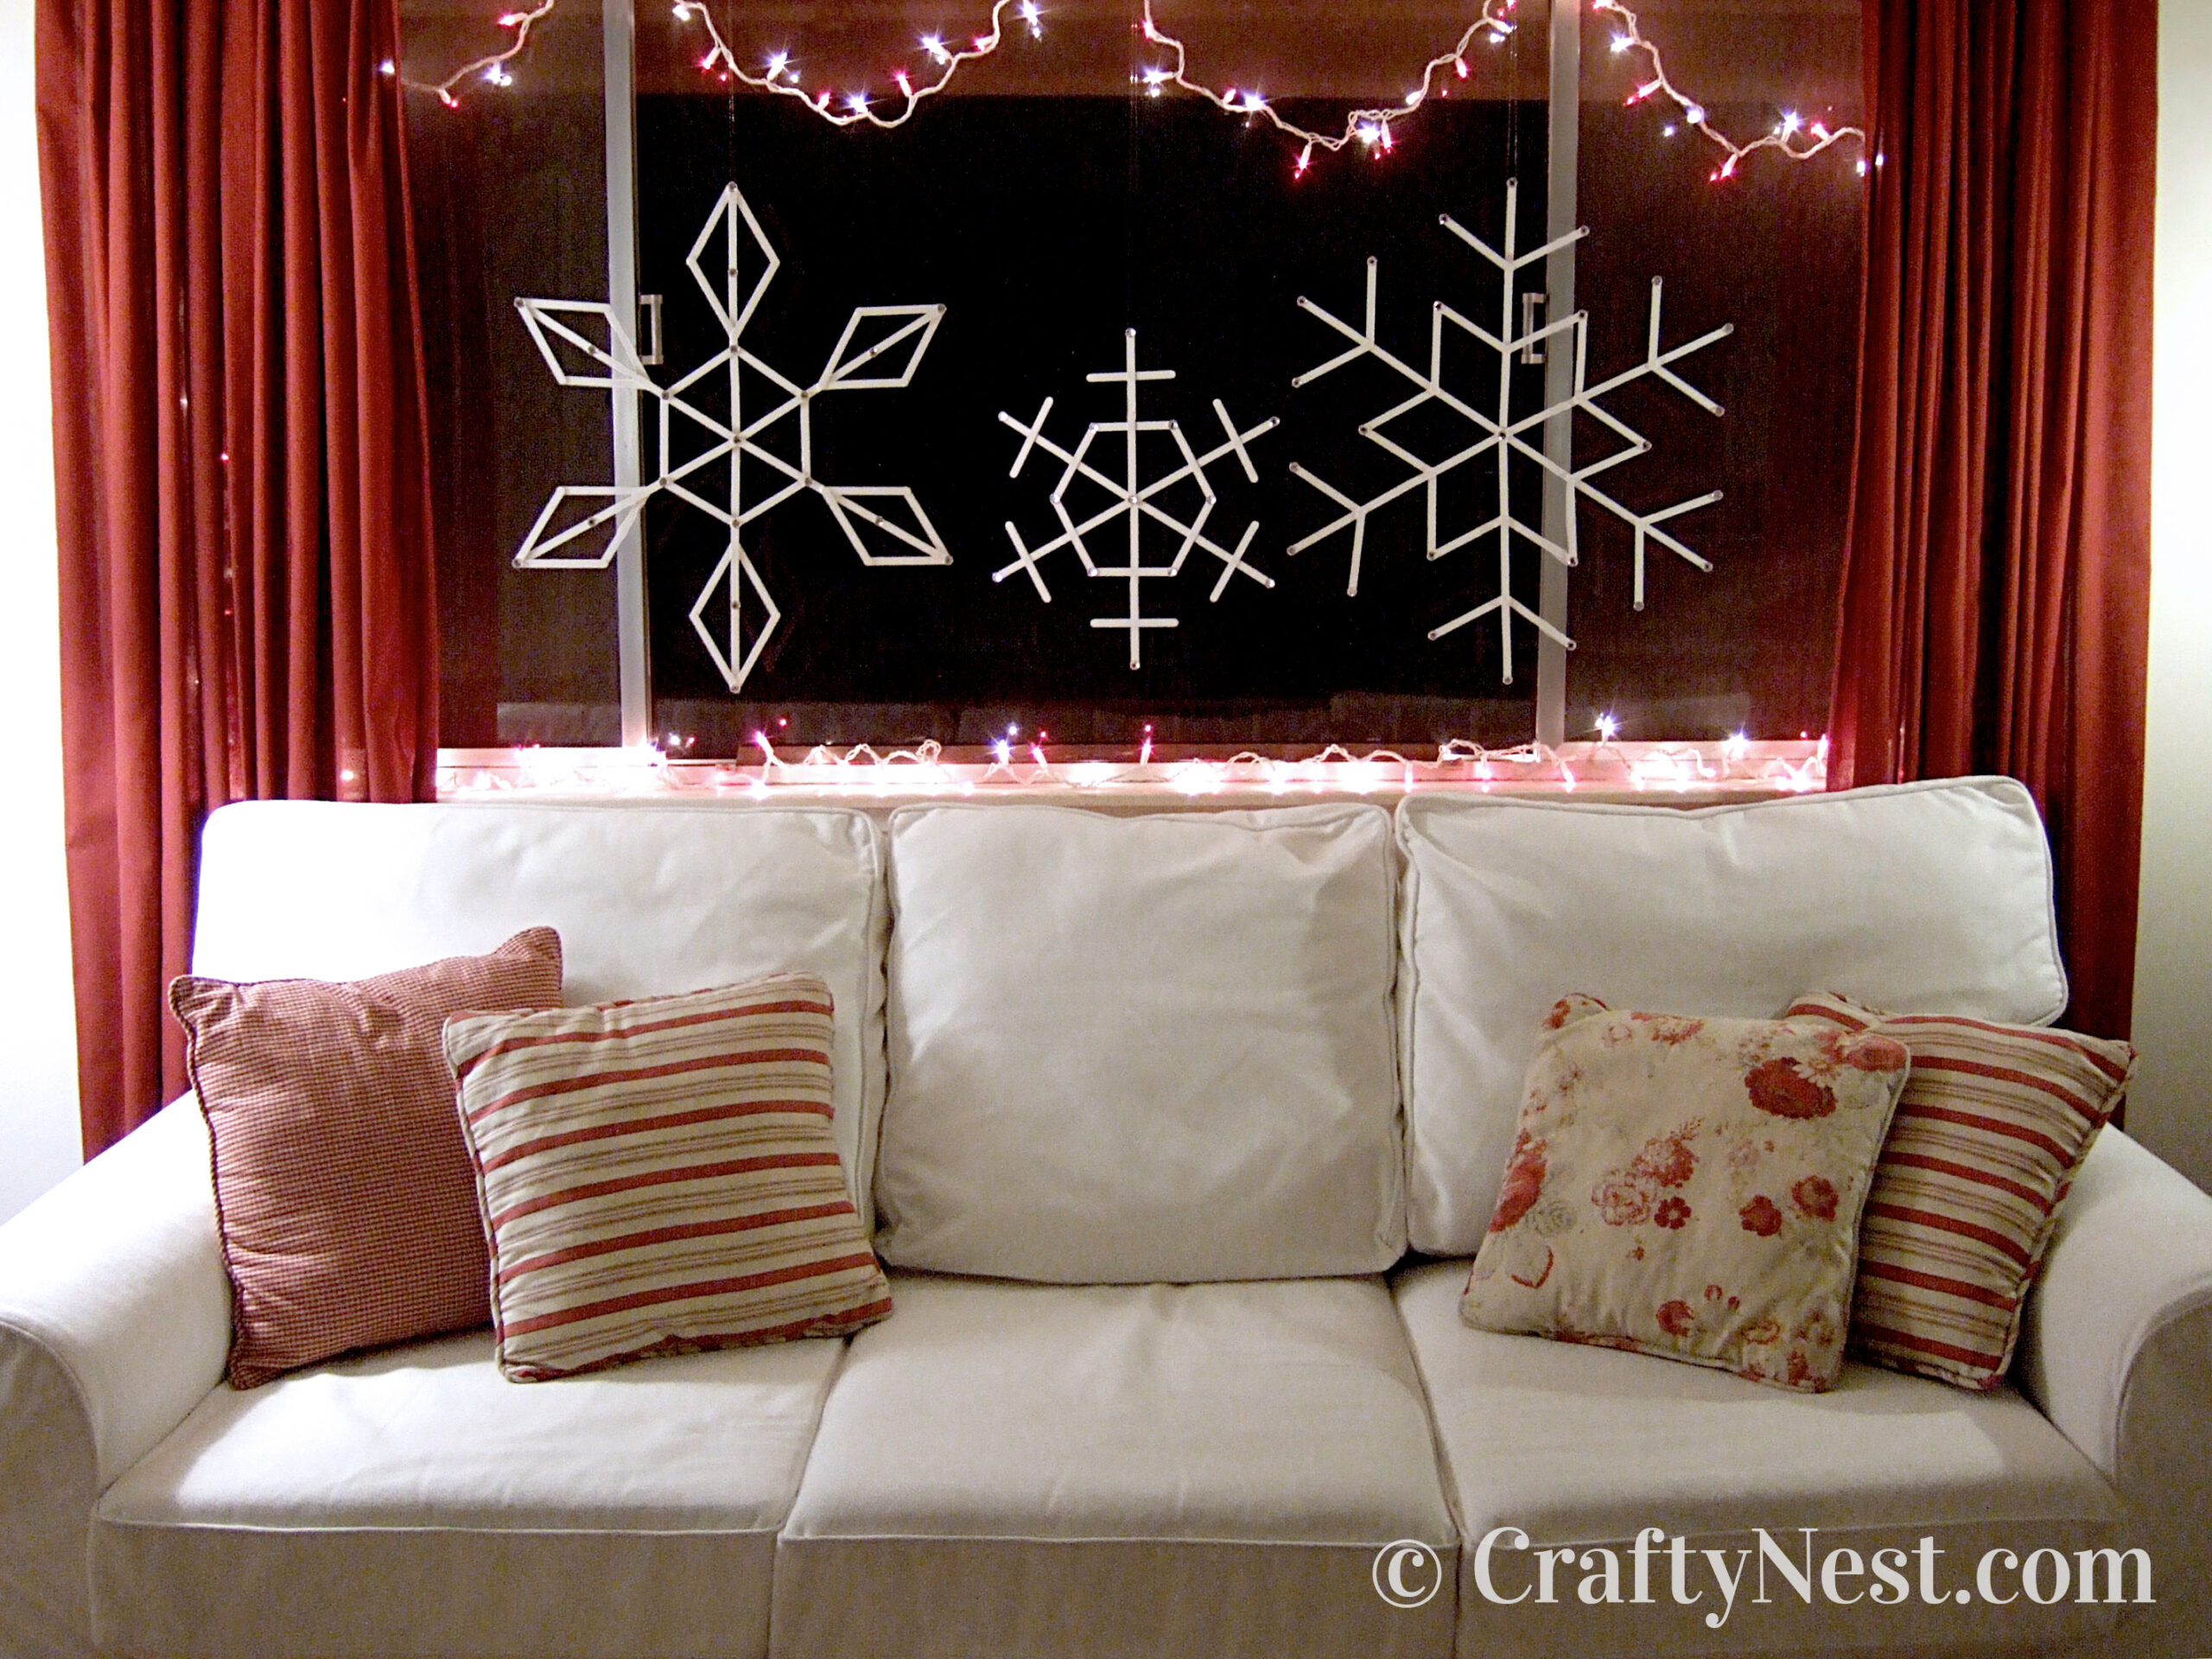 White craft-stick snowflakes in window, photo